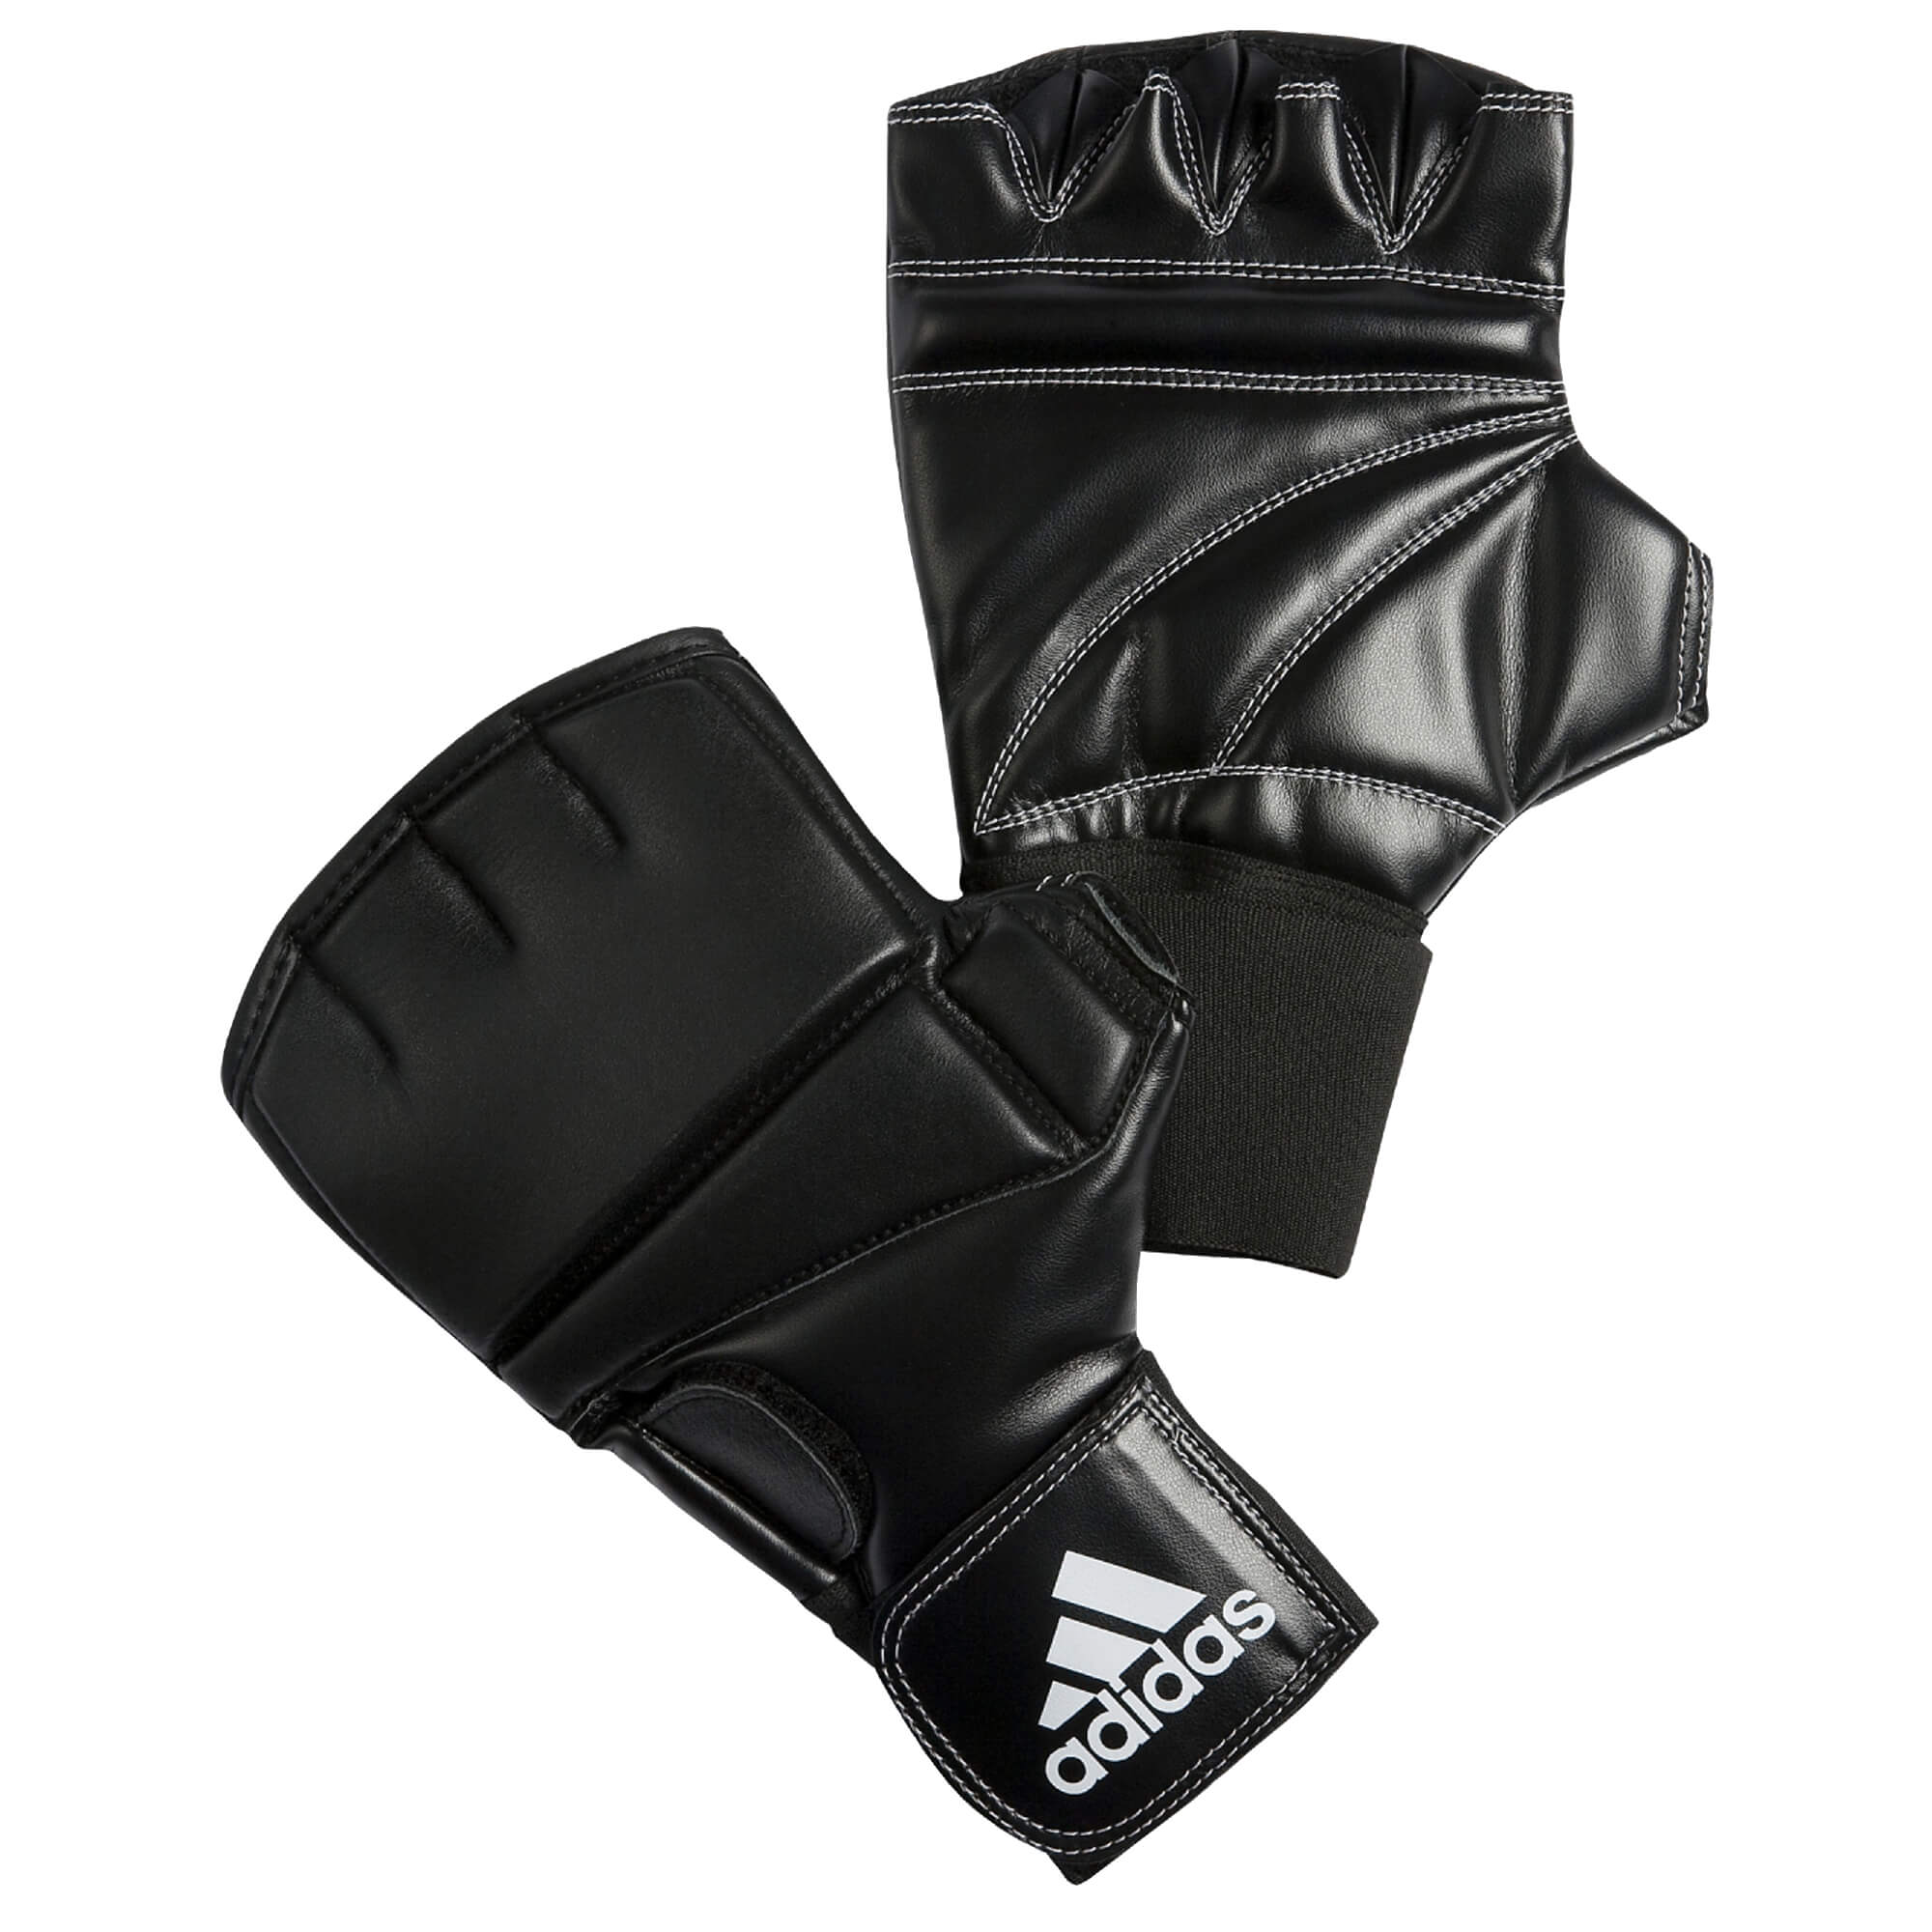 Speed Gel Bag Glove imagine